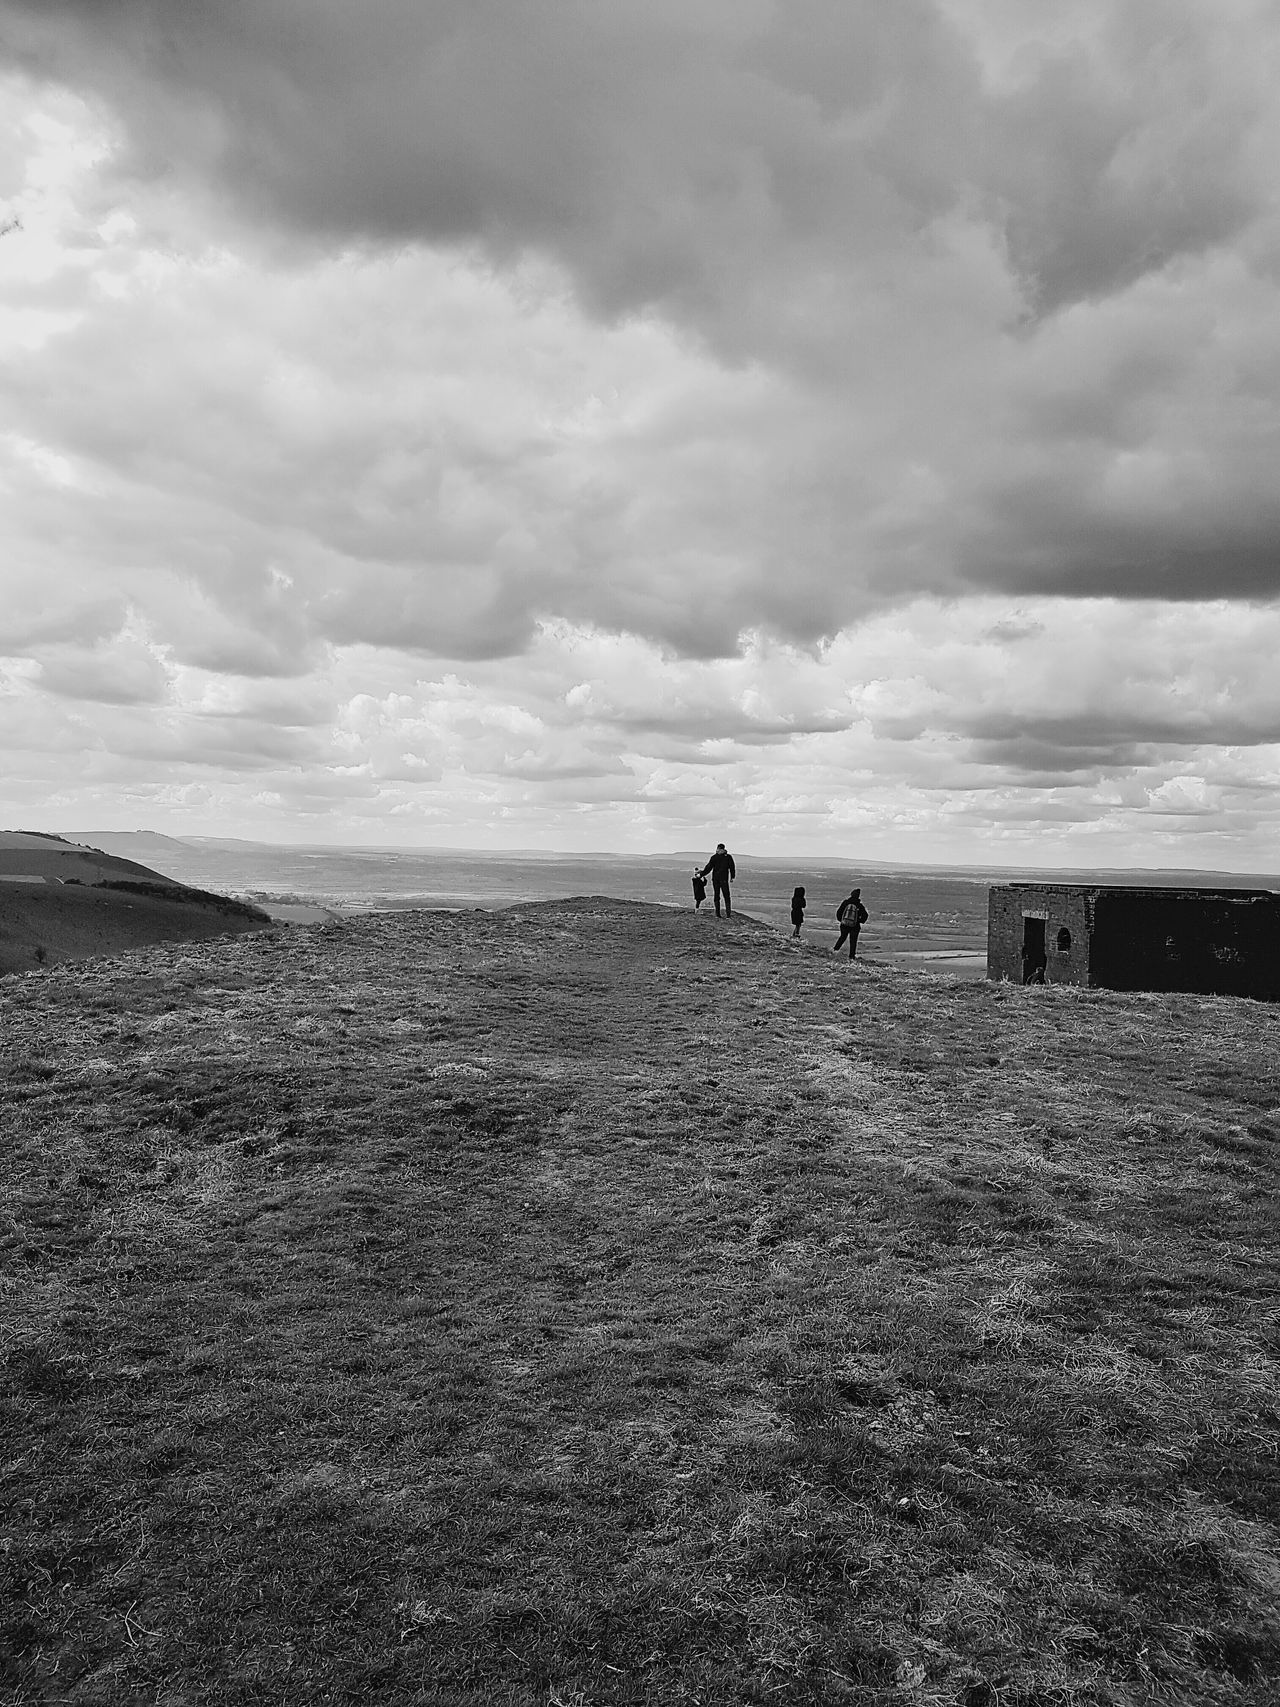 Family Silhouettes Silhouette Black And White Landscapes Landscape Landscape Nature Photography [a:30153] England Visualize Copy Space Visualization Grey Grey Sky Valley Viewing Platform Viewing Clouds And Sky View From Above Viewpoint Birds Eye View Panoramic Panorama Panoramic Landscape The Great Outdoors With Adobe